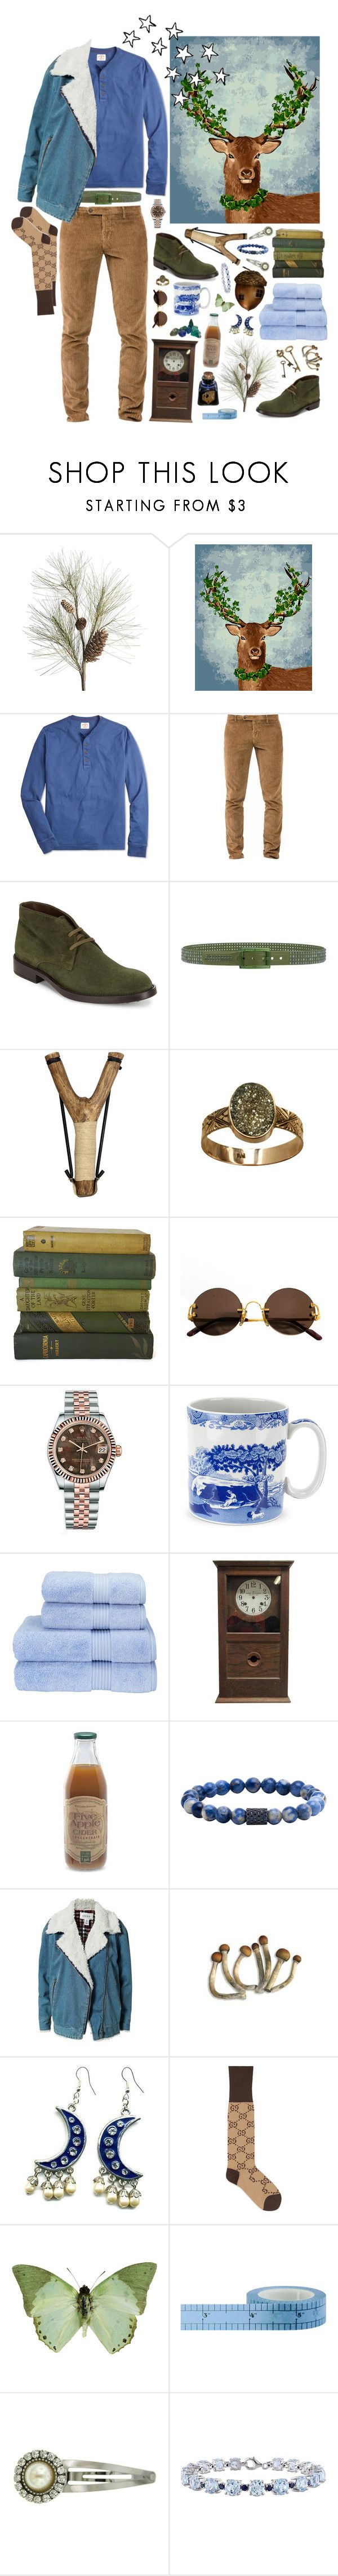 """+ I see the sun go down, I see the sun come up, I see a light beyond the frame +"" by whimsically-so ❤ liked on Polyvore featuring Crate and Barrel, Brooks Brothers, Berwich, Tod's, Tie-Ups, Cartier, Rolex, Spode, Christy and Williams-Sonoma"